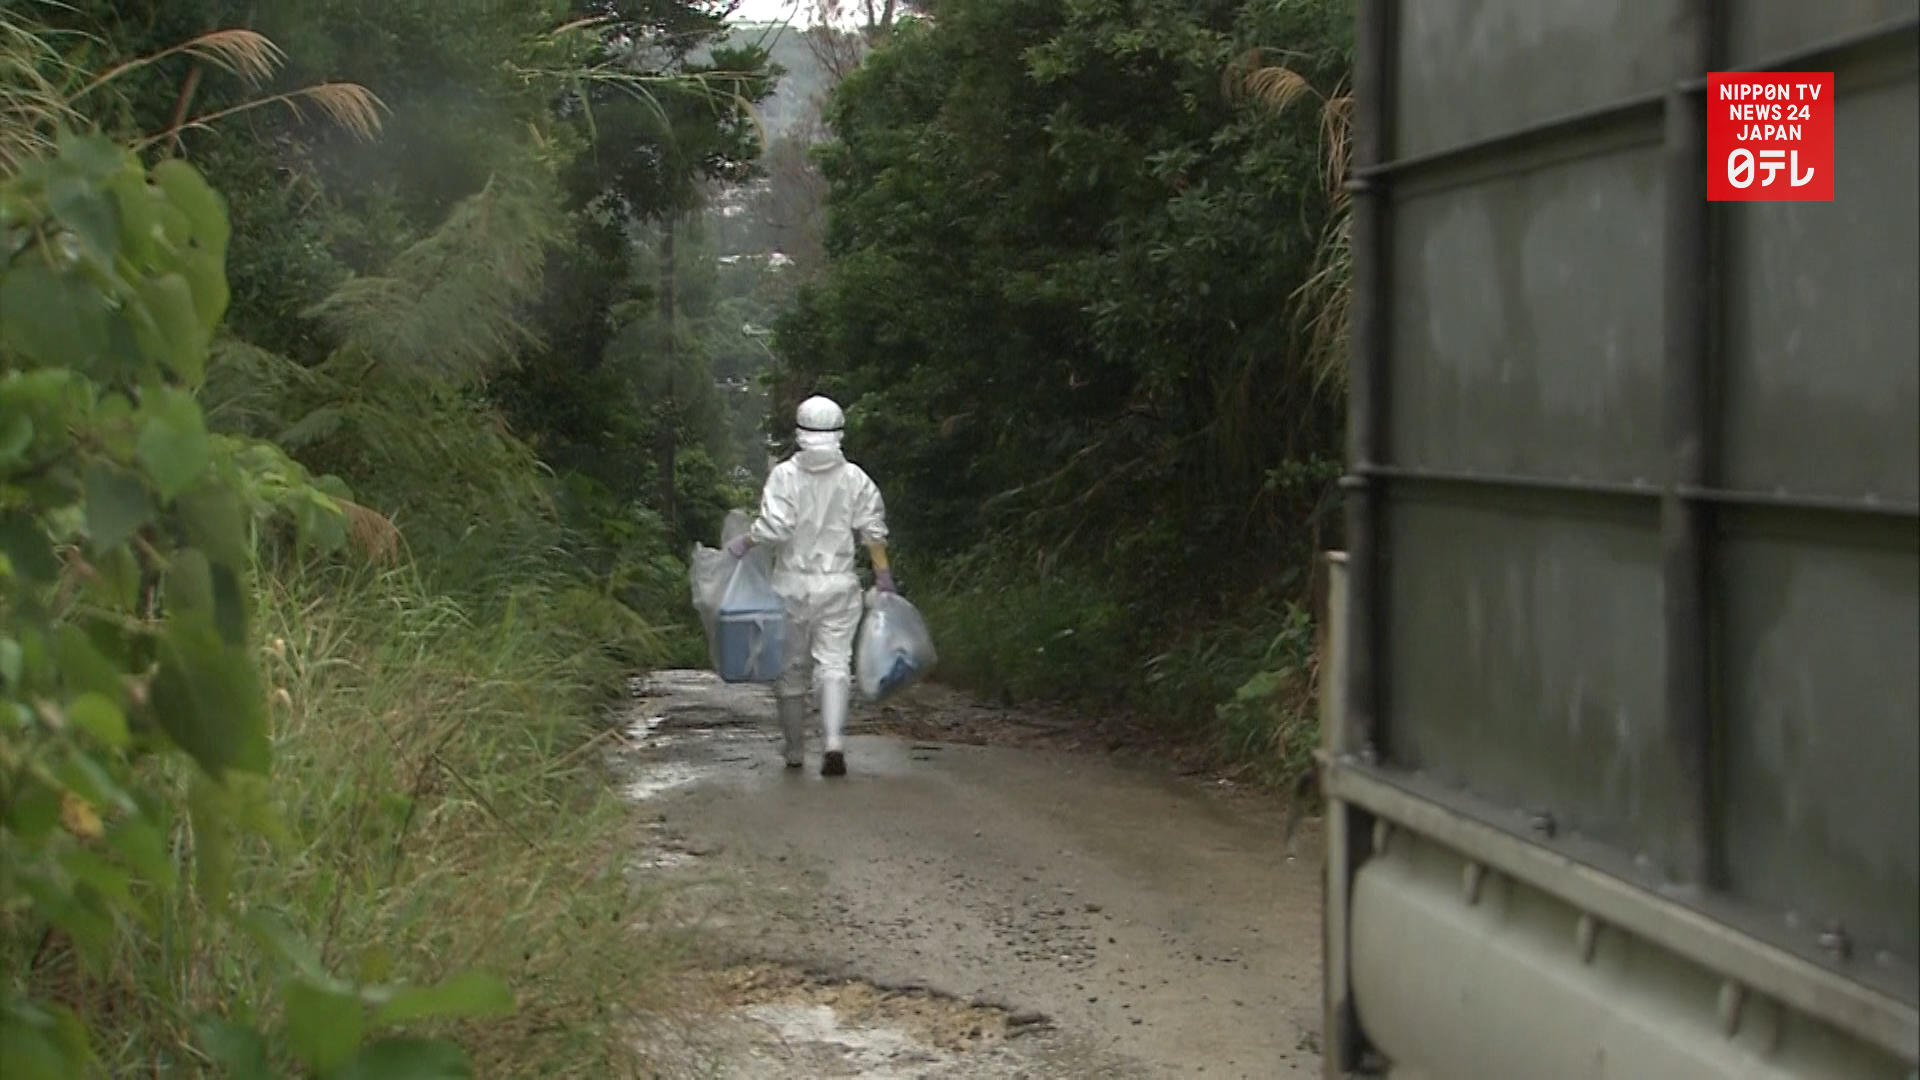 1,800 pigs to be culled in Okinawa after swine fever outbreak